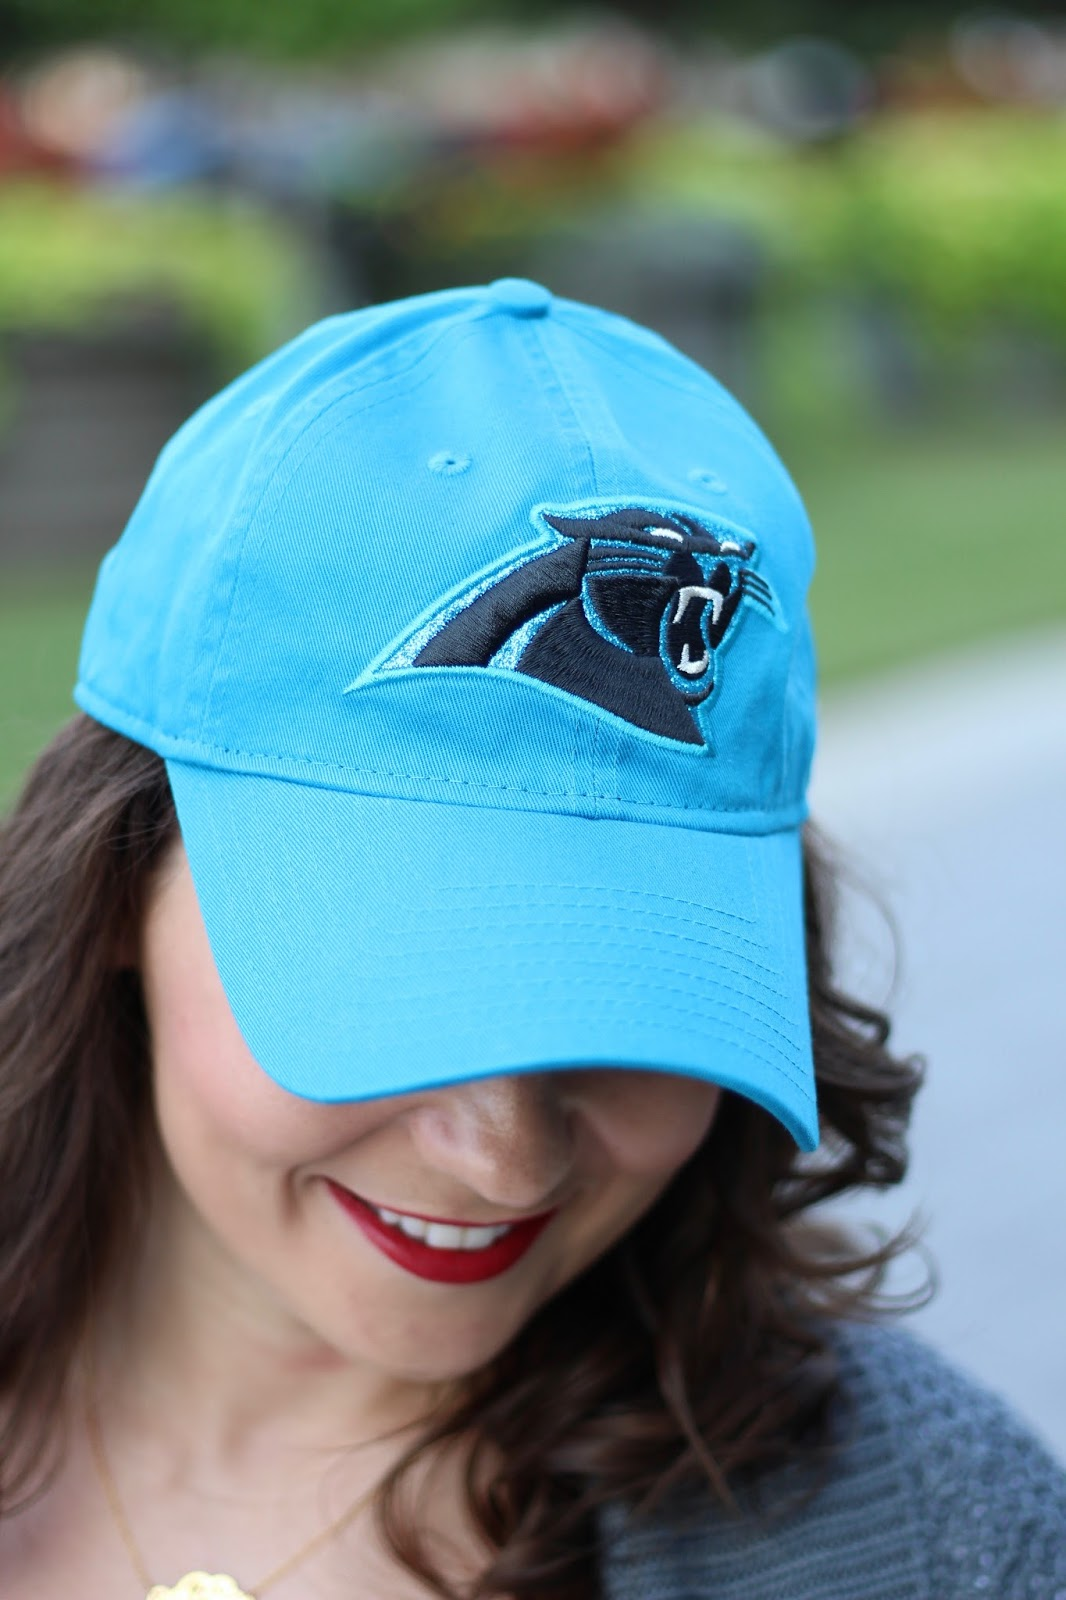 Carolina Panthers blue baseball hat